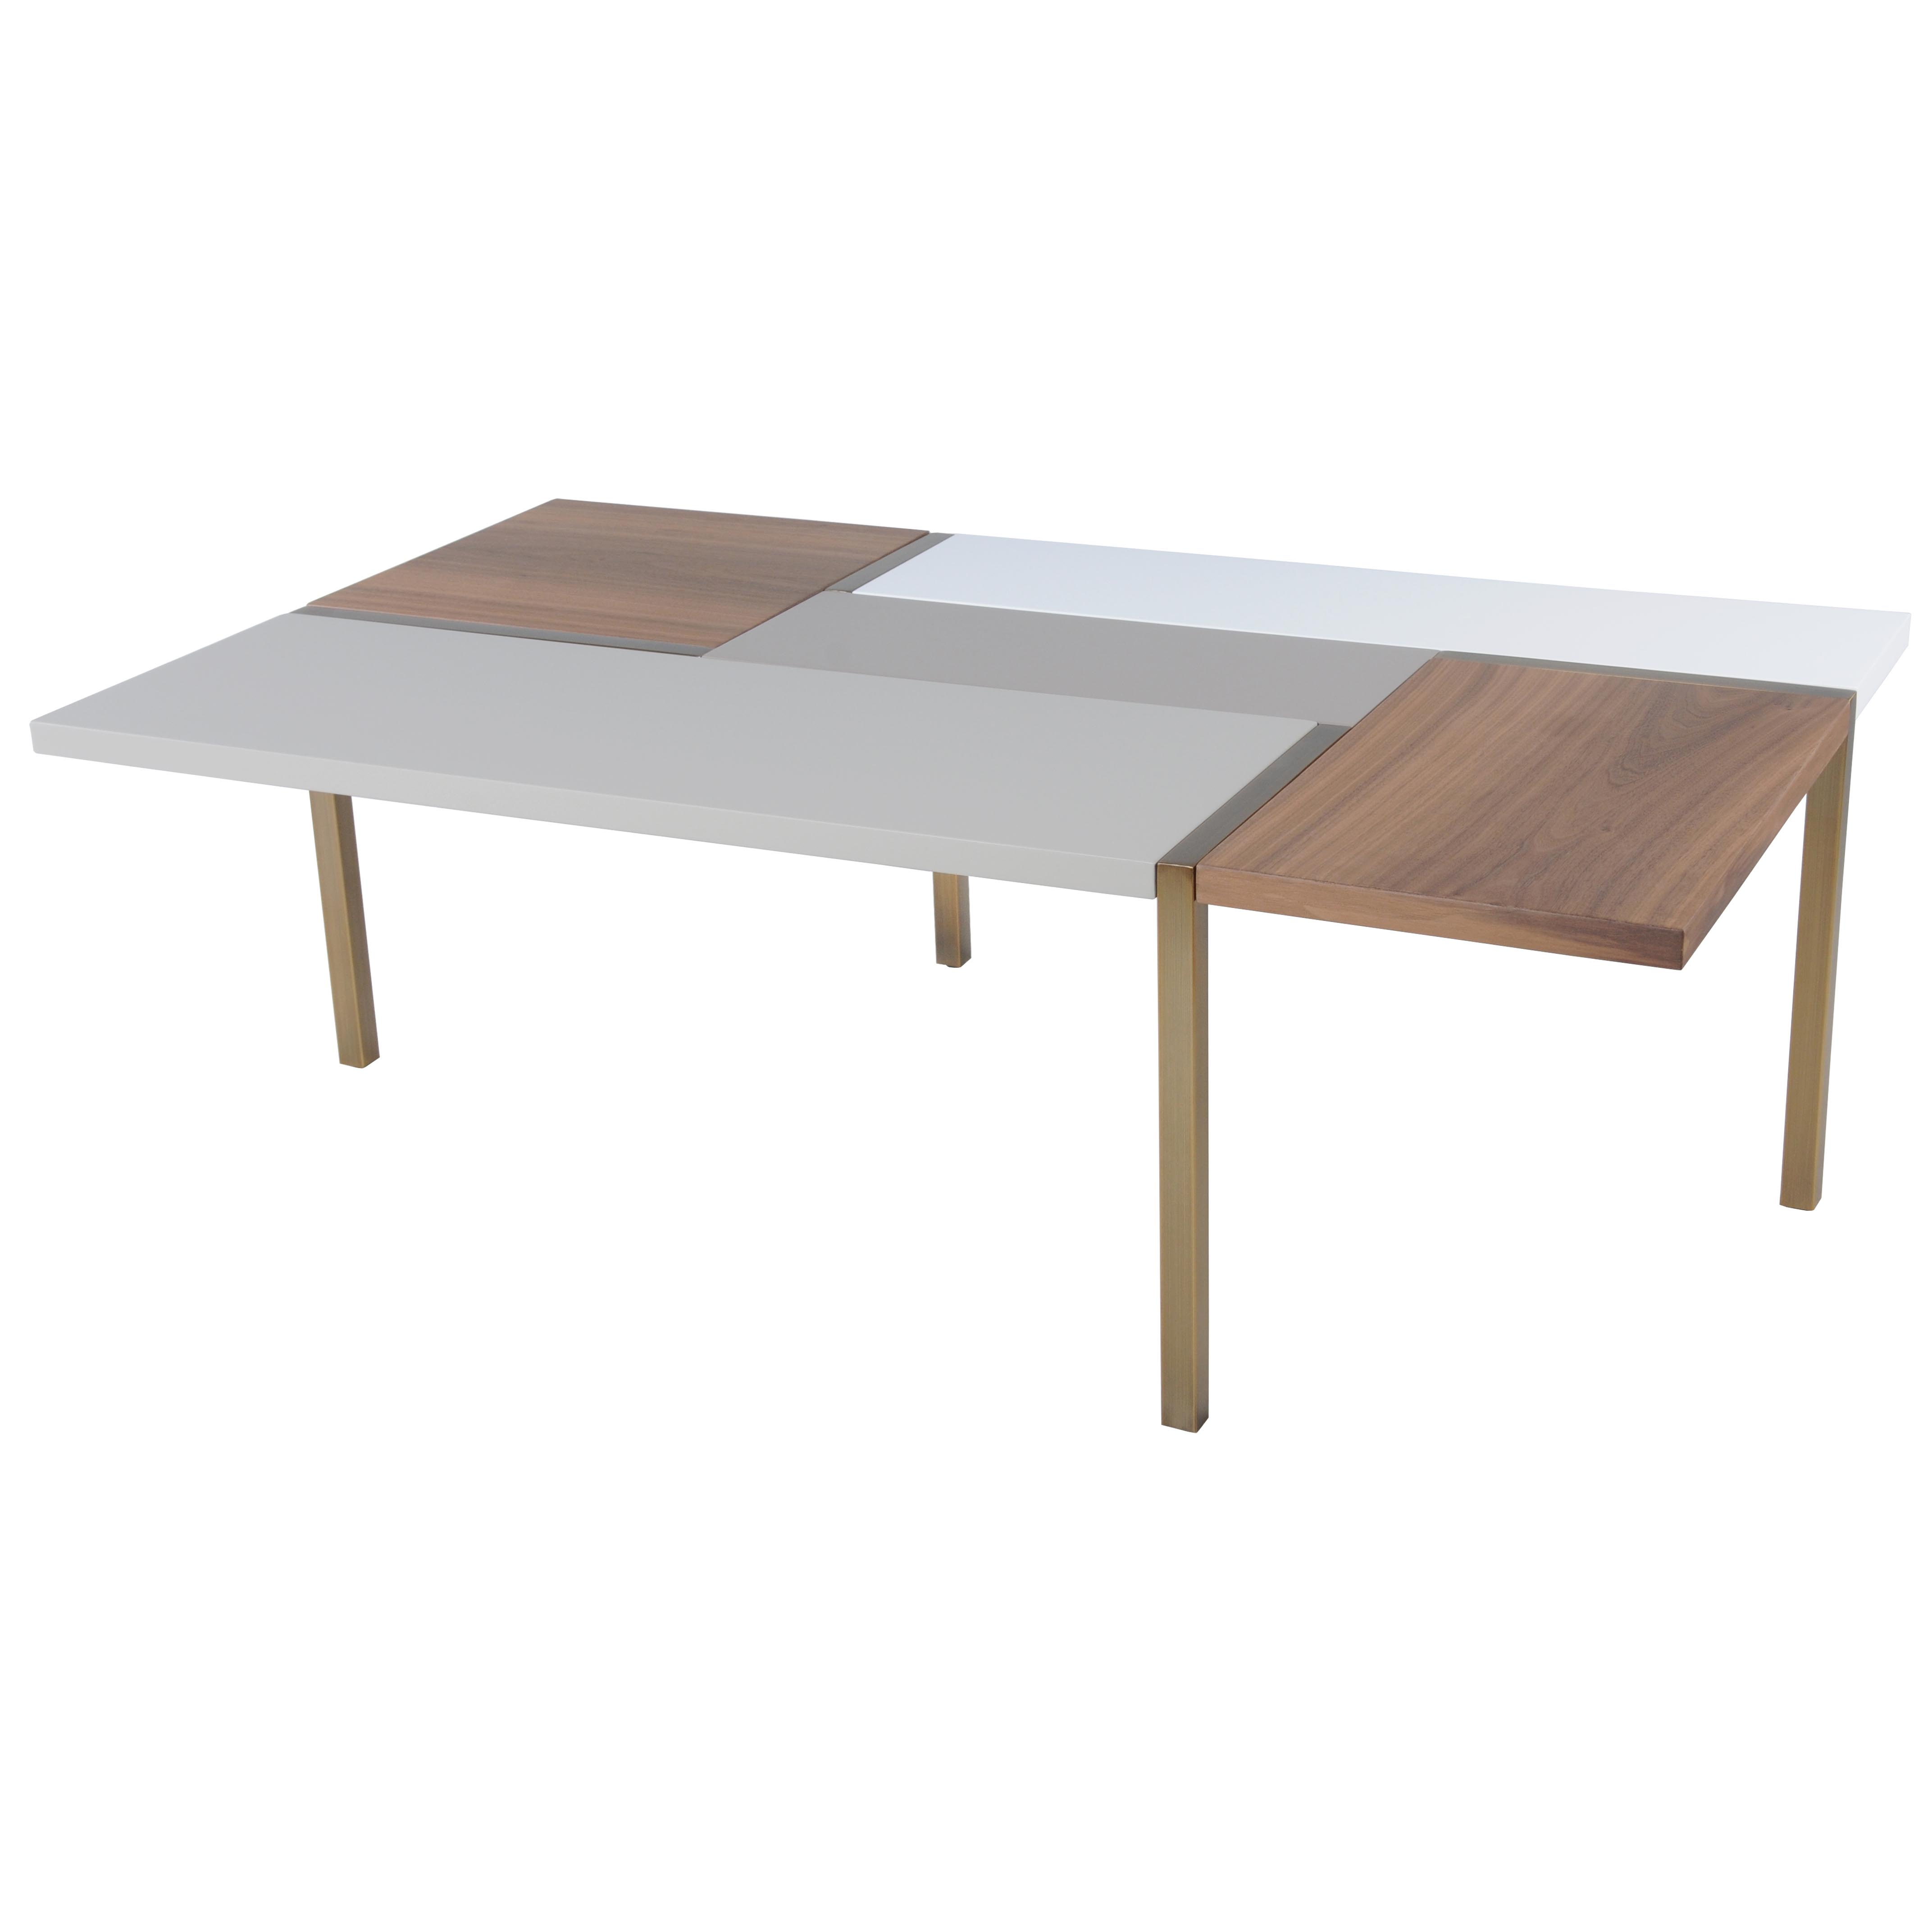 100 Affordable Coffee Tables Brilliant Round Coffee  : 67000043863 from 45.32.79.15 size 4288 x 4288 jpeg 232kB